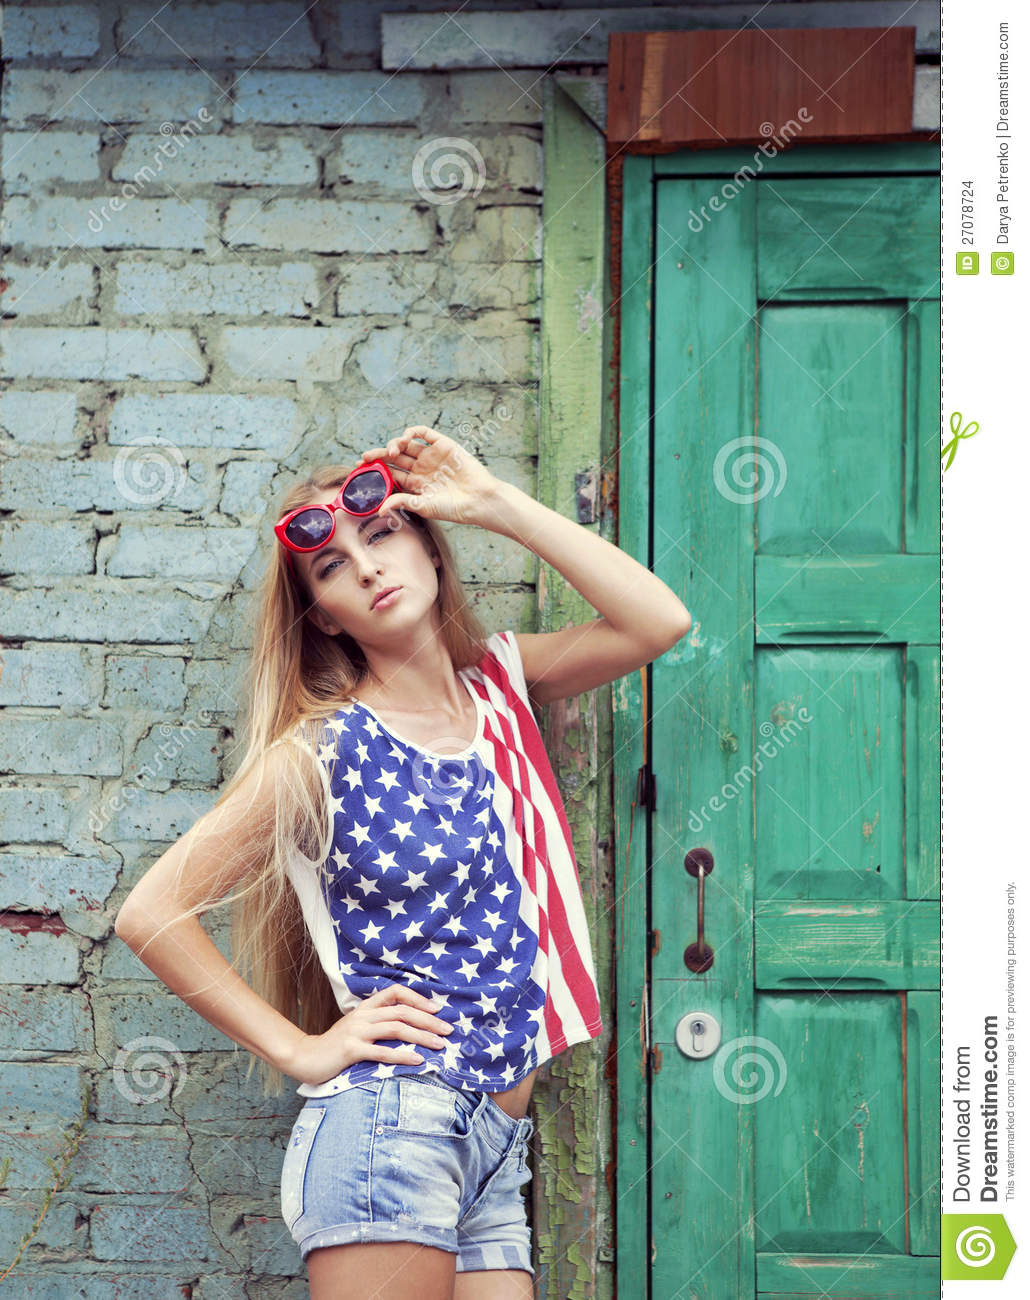 ... holds hands on her glasses wearing closses in american retro style